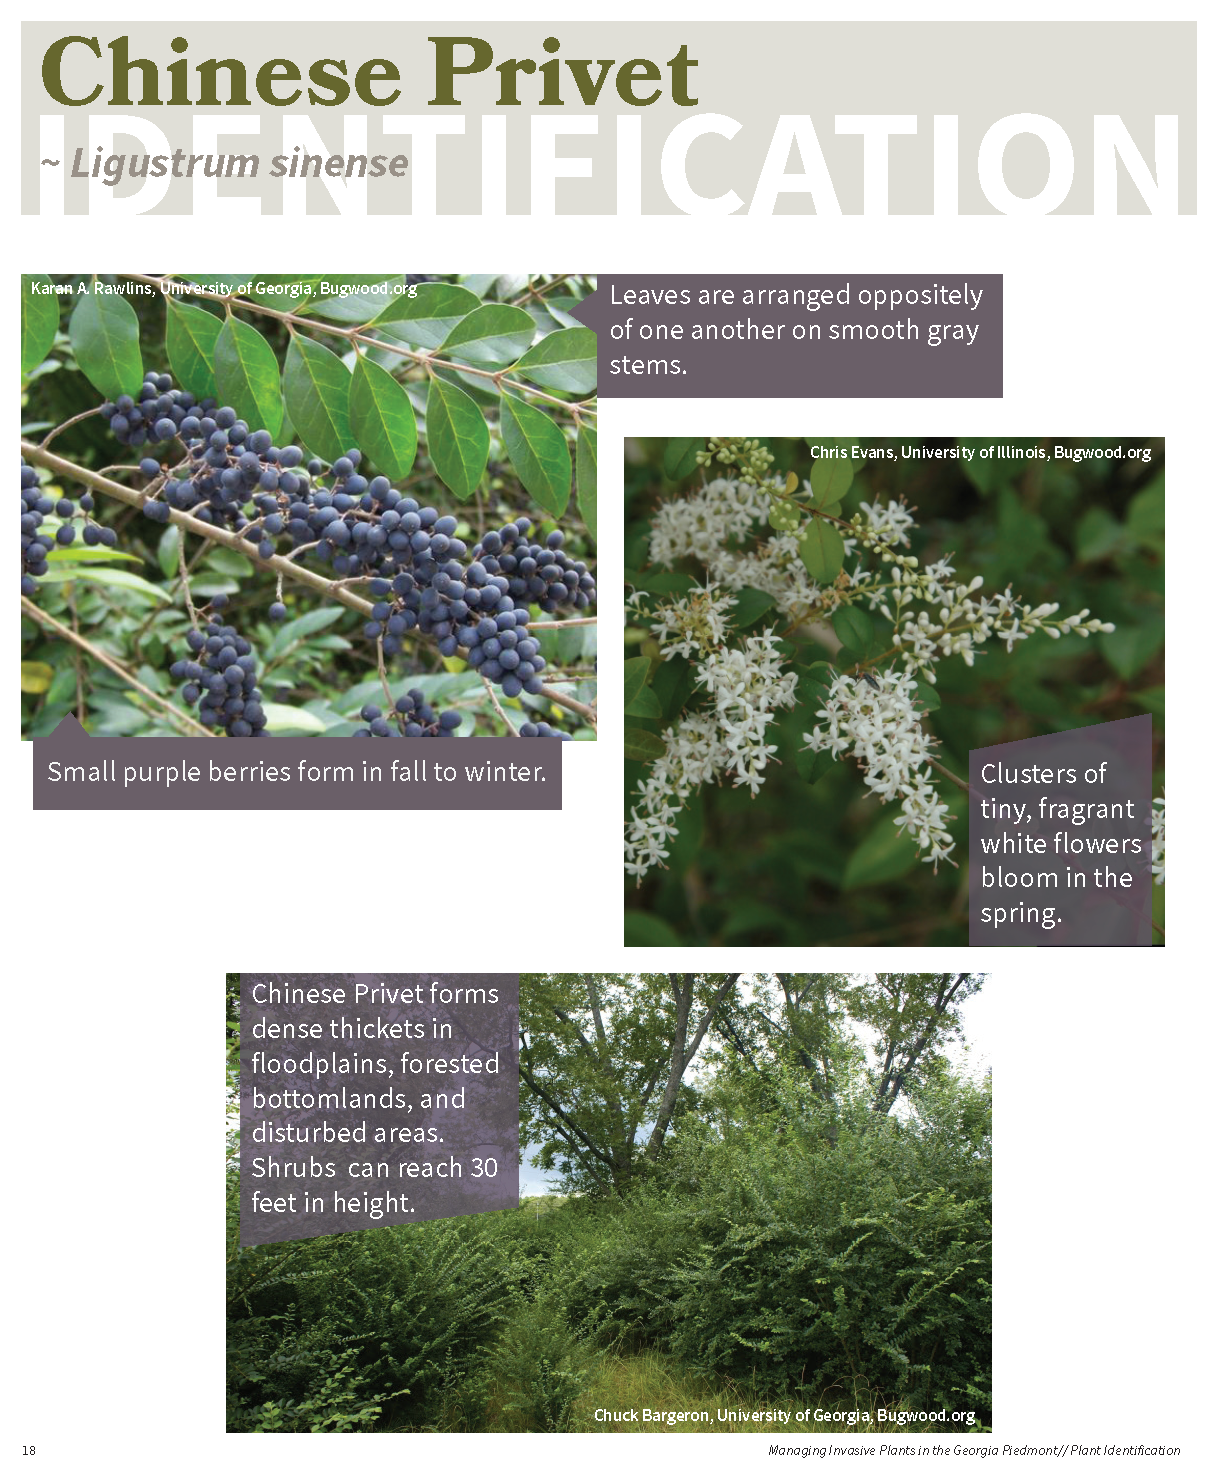 Managing Invasive Plants in the GA Piedmont for web_Page_17